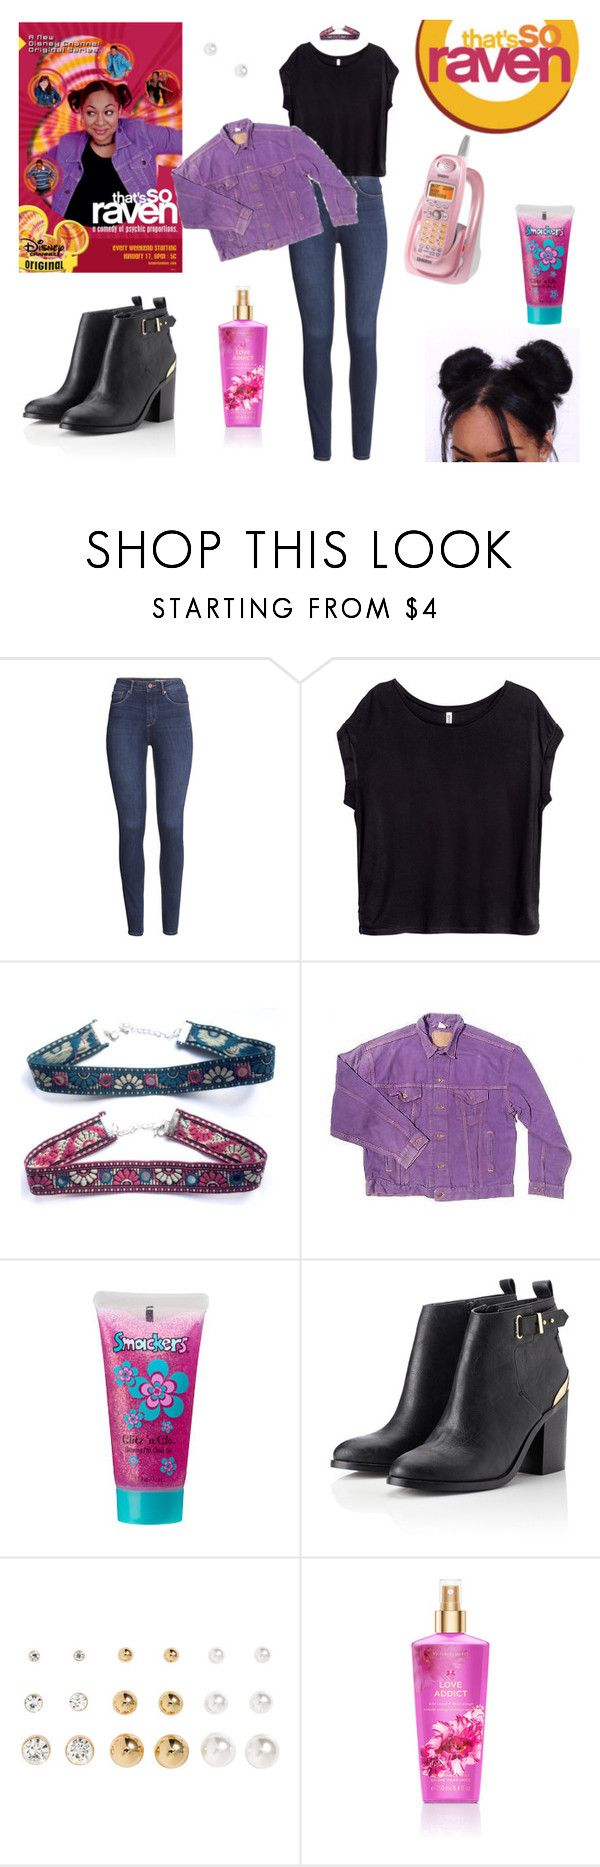 """""""That's So Raven Costume !"""" by milena-serranista ❤ liked on Polyvore featuring H&M, Moonchild, Uniden, Levi's, Bonne Bell, Chanel, Lipsy, Raven Denim and Victoria's Secret"""